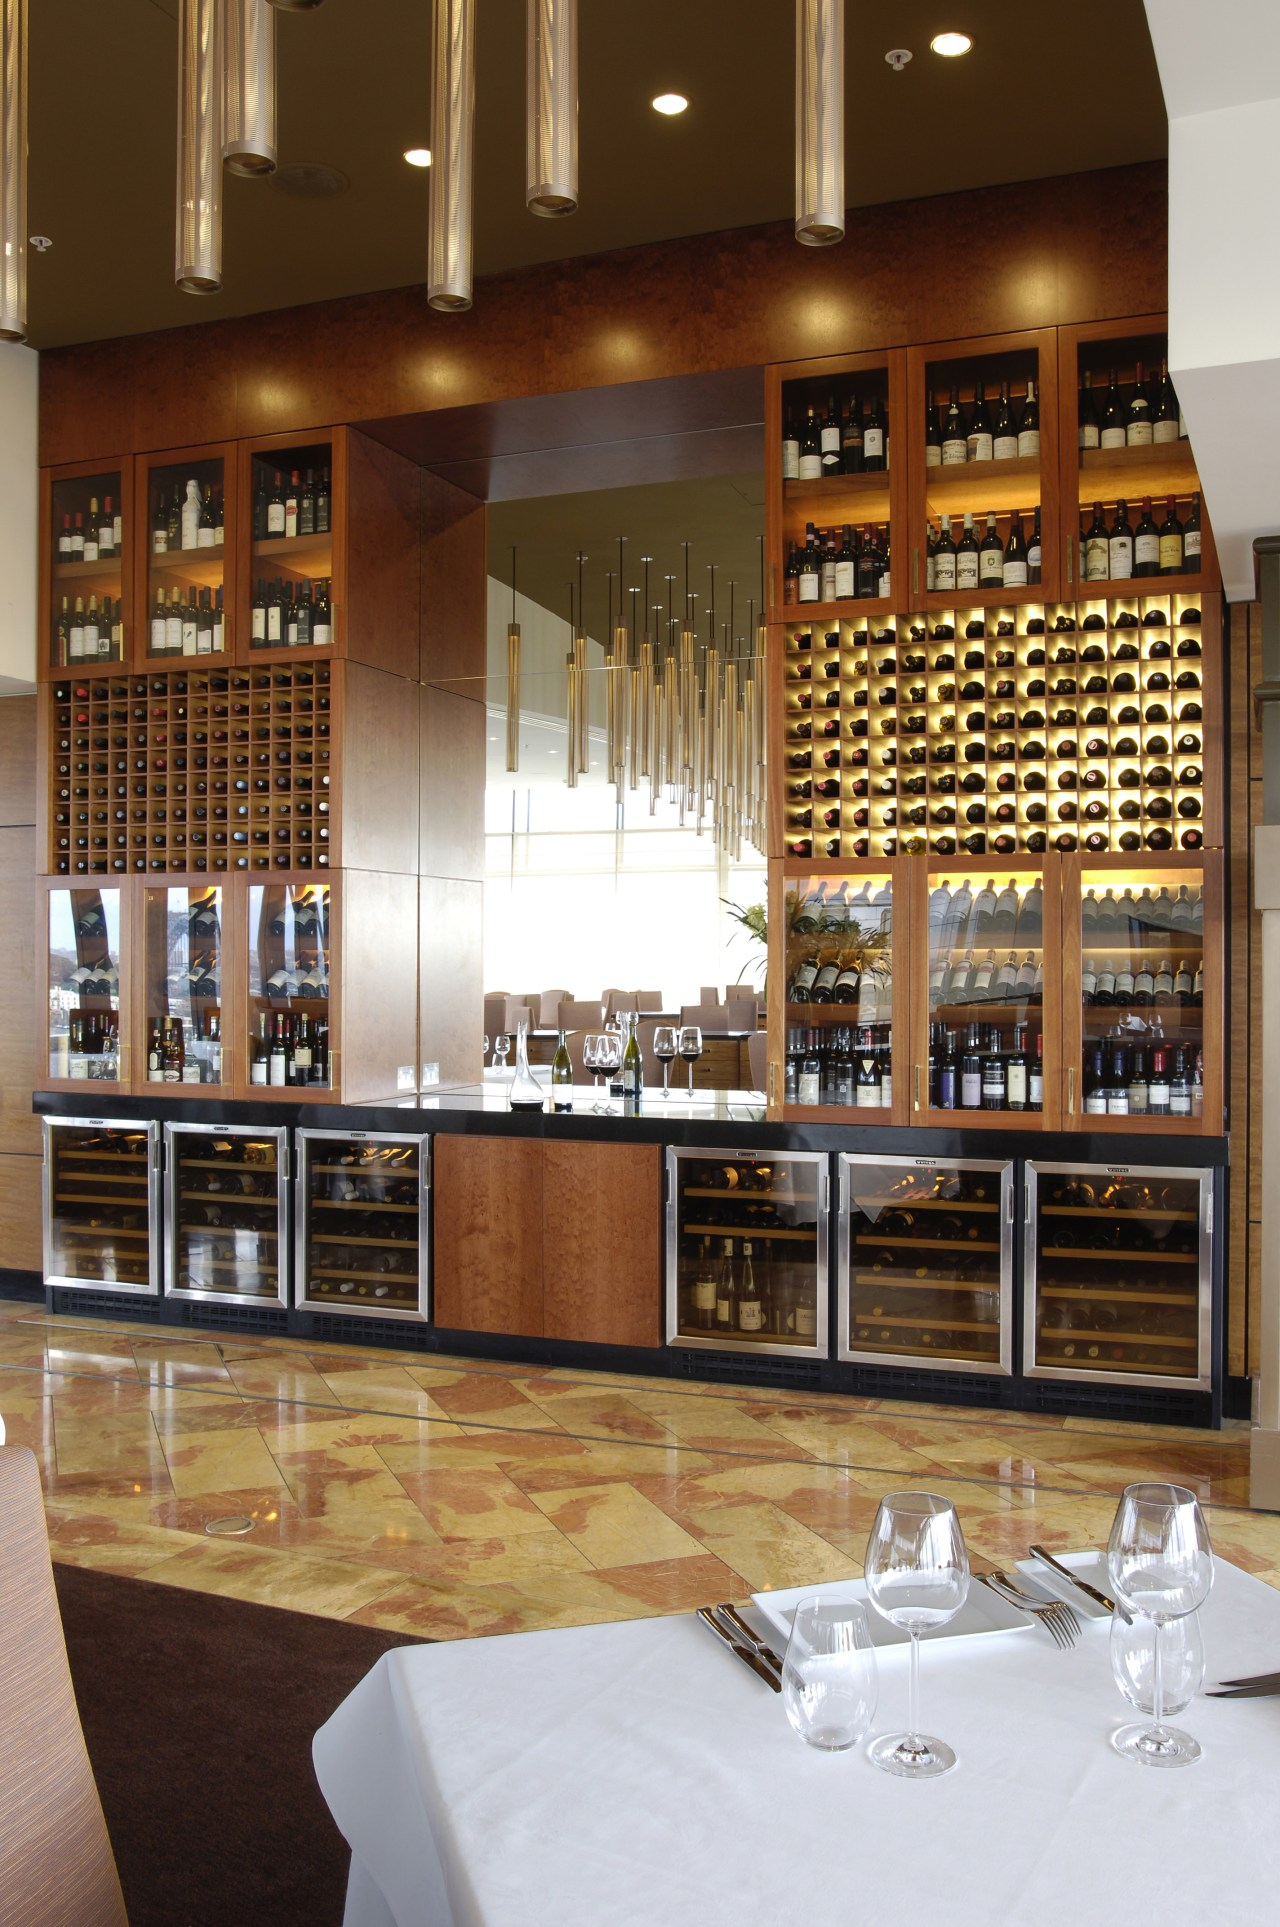 Vintec wine cabinets enhance the professional ambience of café, countertop, interior design, kitchen, liquor store, restaurant, wine cellar, winery, brown